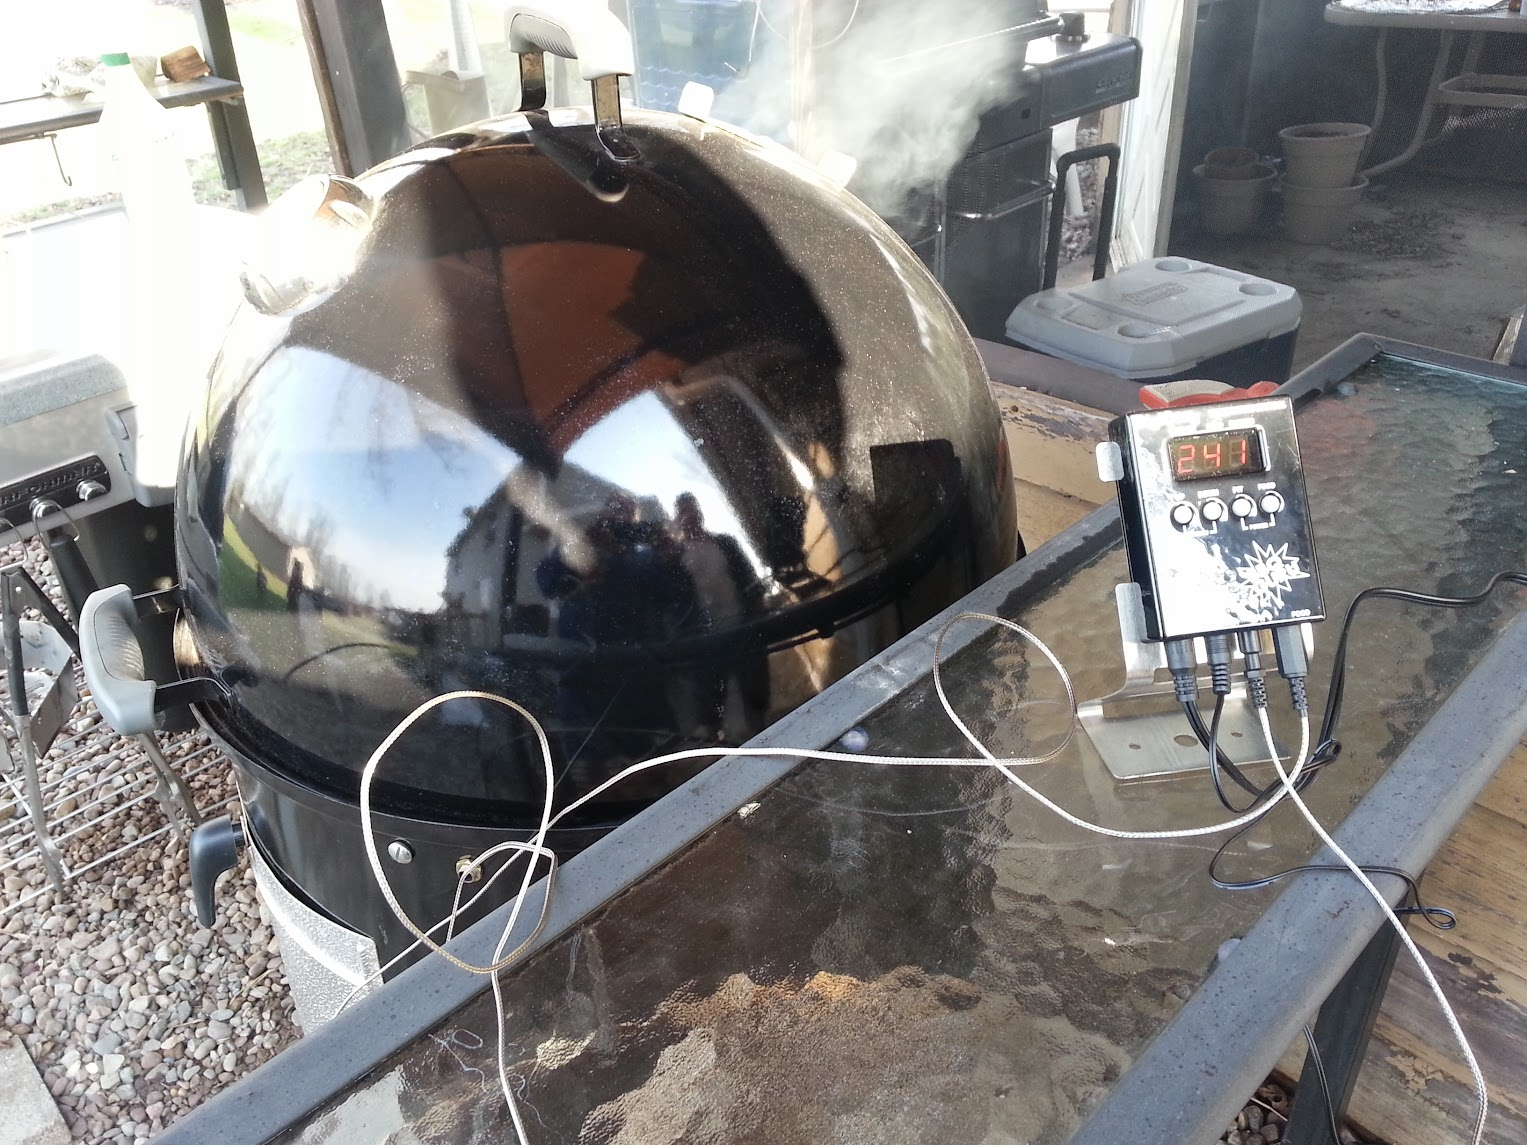 Bbq Guru Party Q 1st Smoke With Digiq Dx2 In My 22 5 Wsm With 2 Pork Bone Shoulders